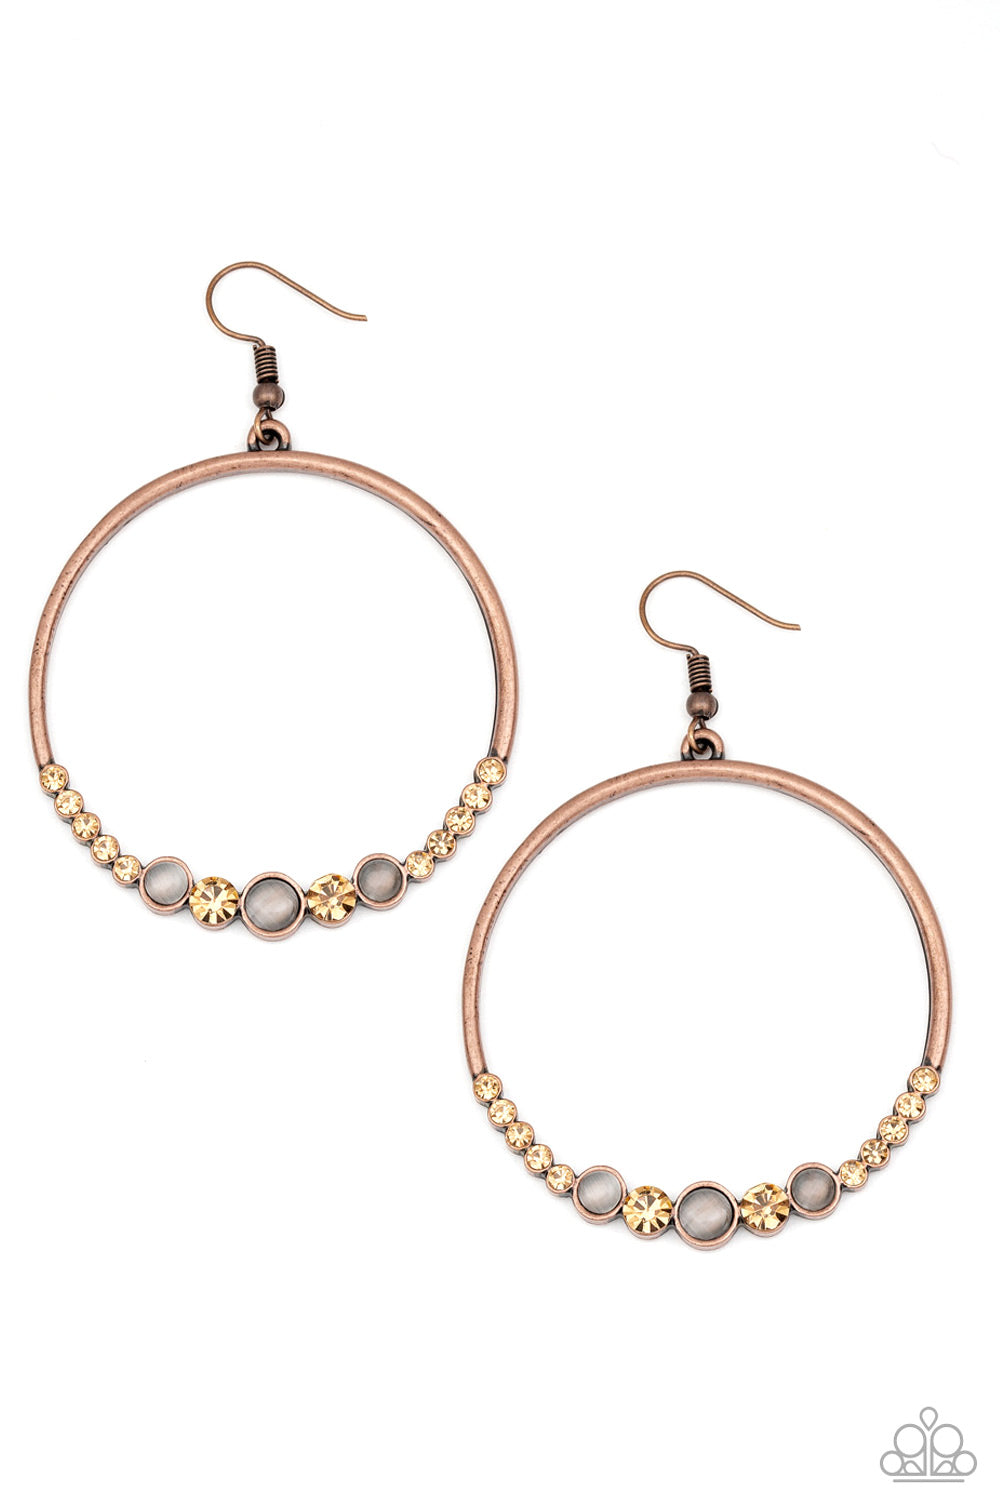 five-dollar-jewelry-dancing-radiance-copper-earrings-paparazzi-accessories